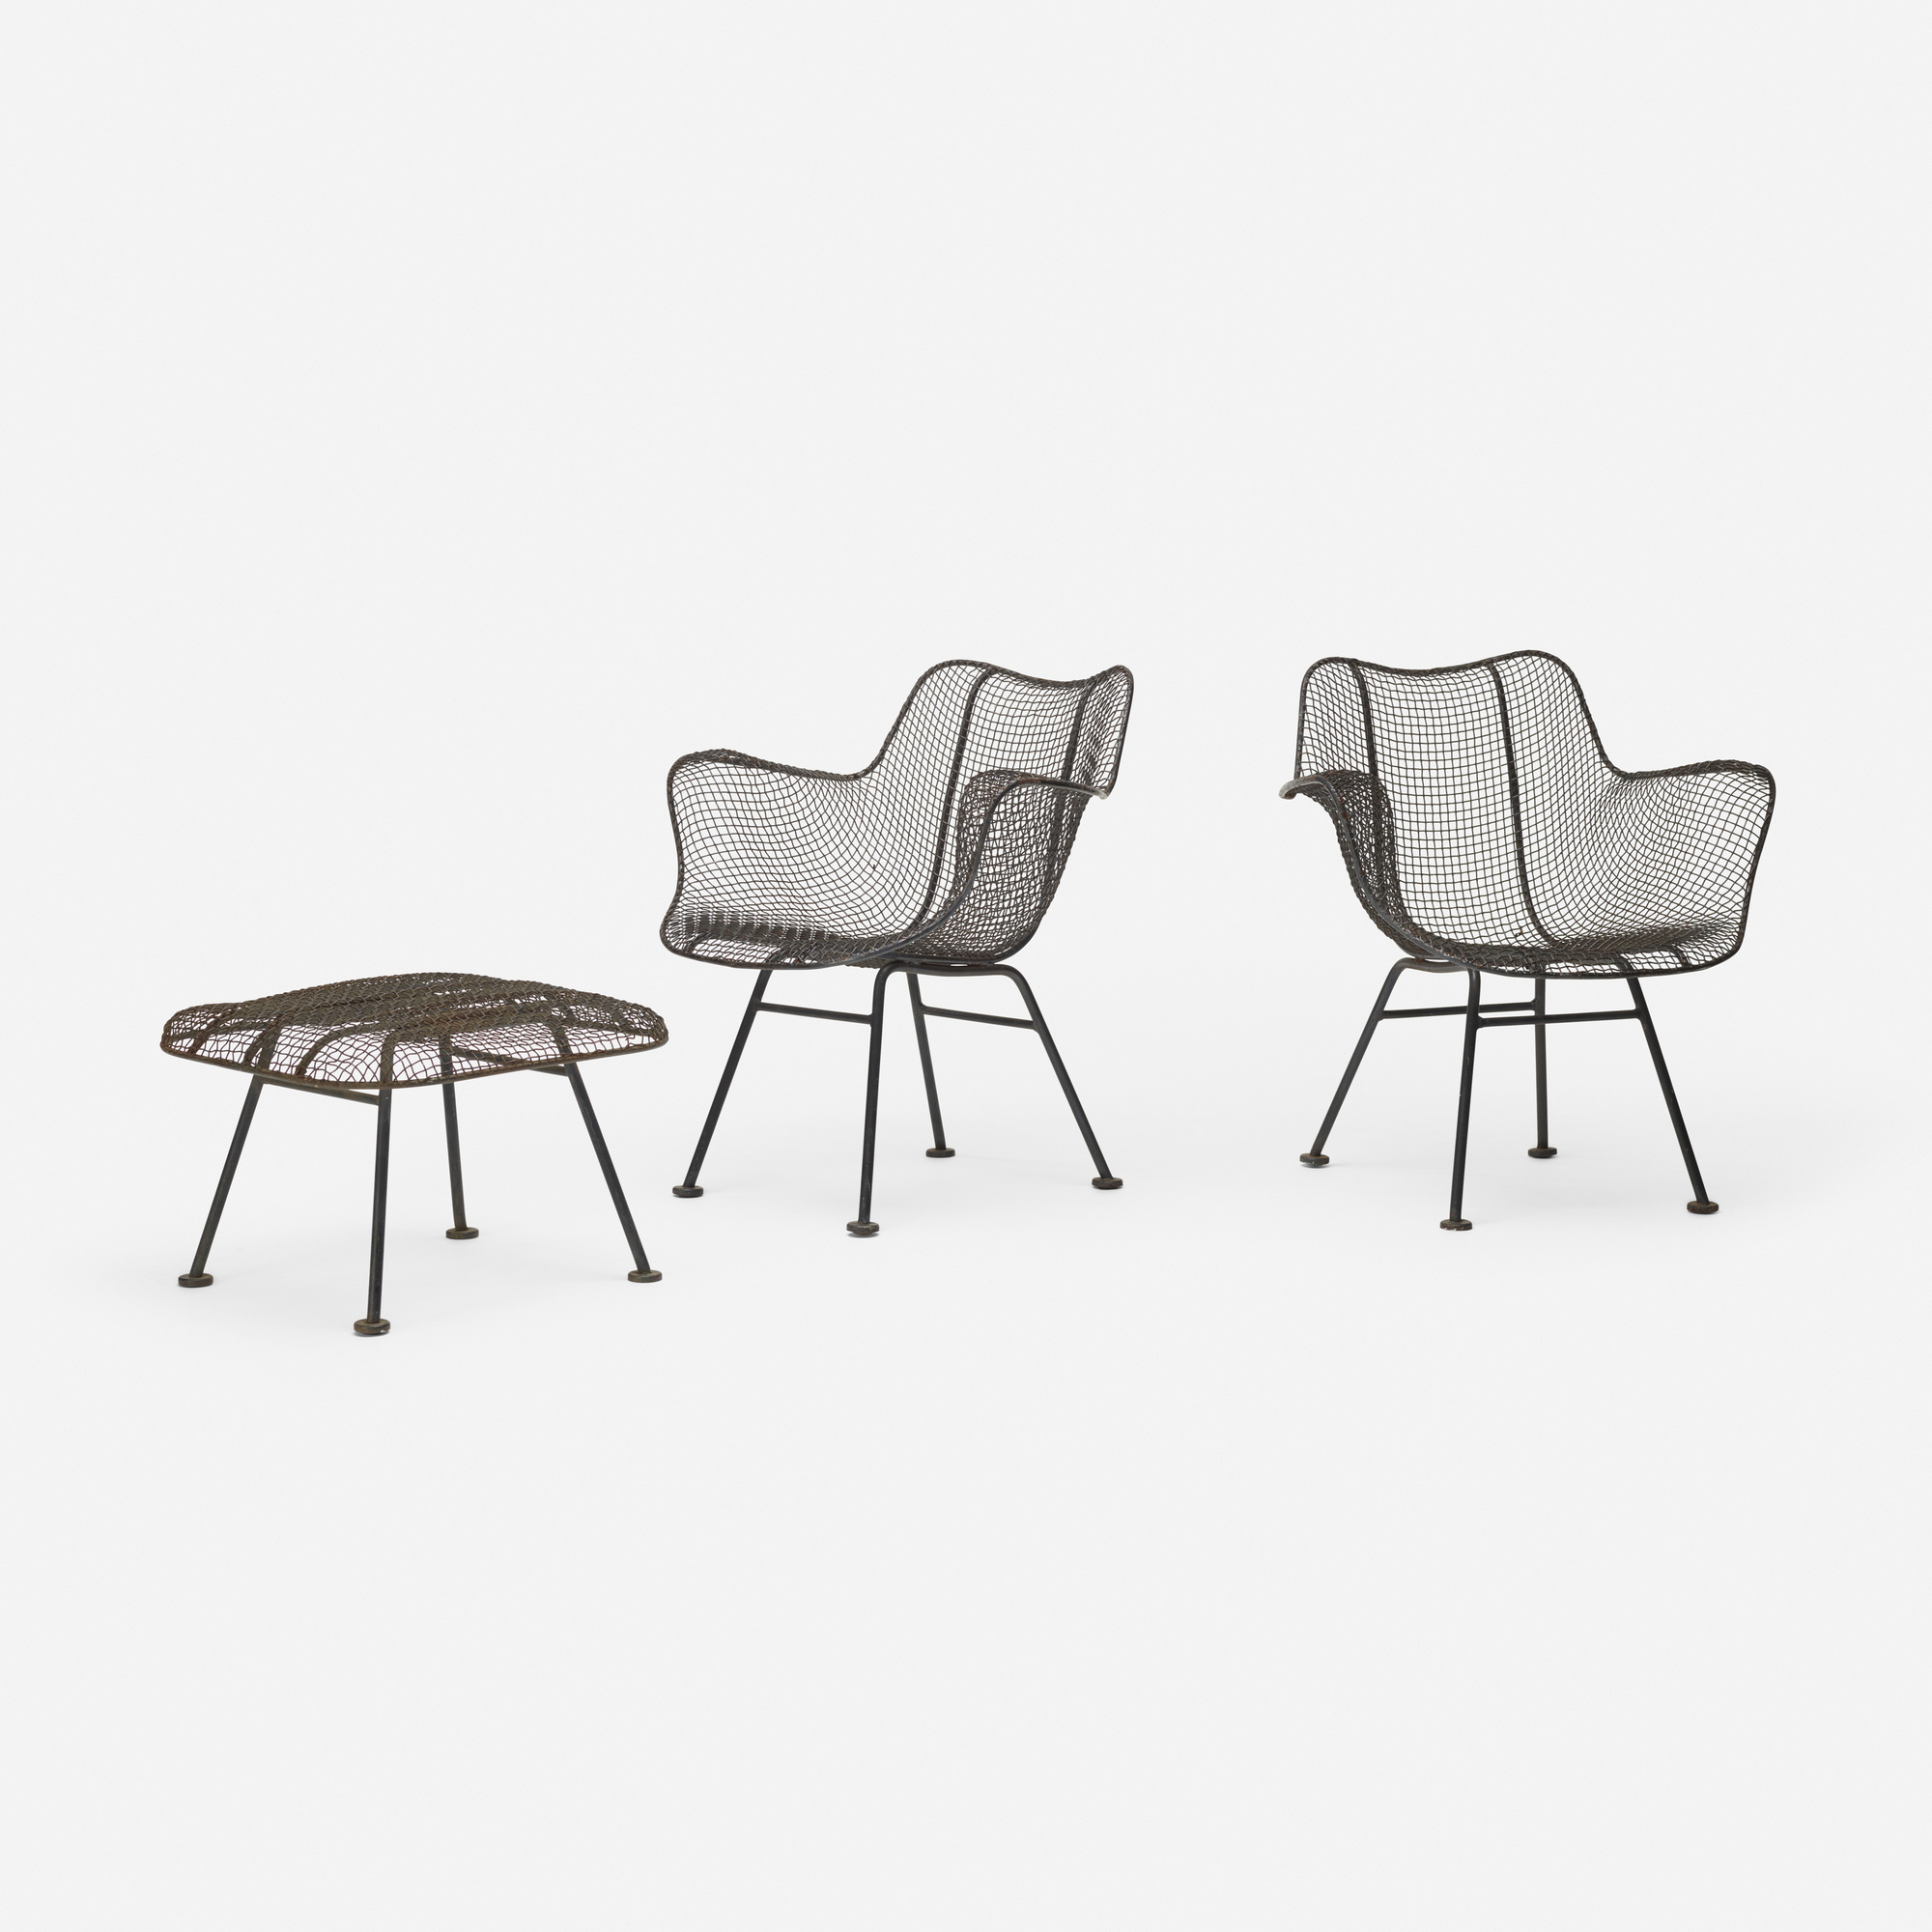 362: Russell Woodard / Sculptura lounge chairs, pair with ottoman (1 of 3)